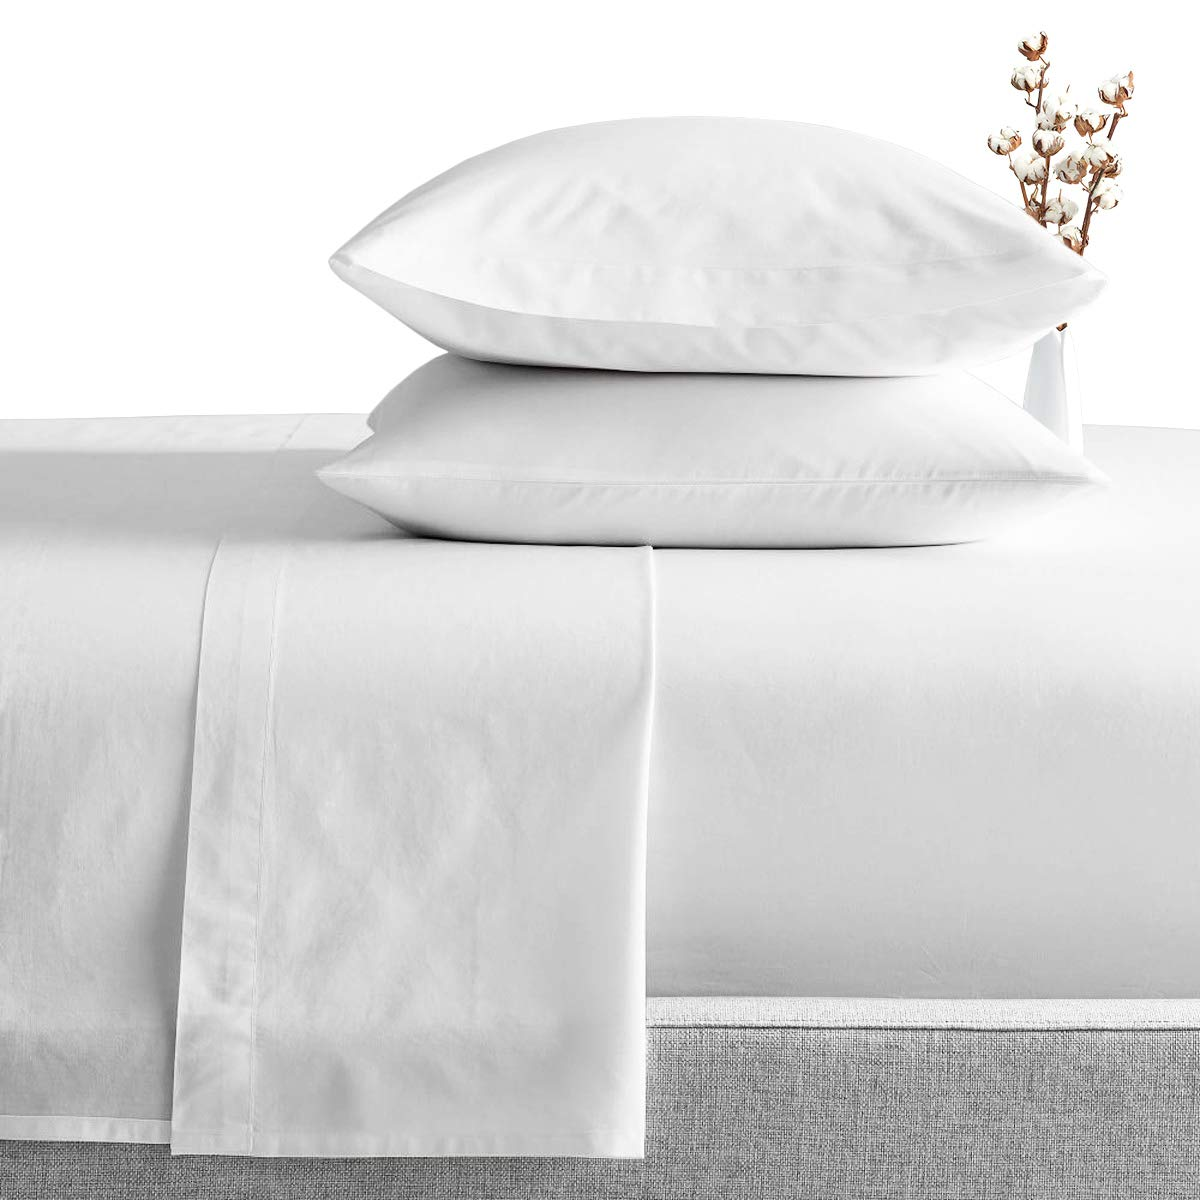 SGI bedding Full Size Sheets Luxury Soft 100% Egyptian Cotton - Sheet Set for Full Size 54x75 Mattress White Solid 600 Thread Count Deep Pocket